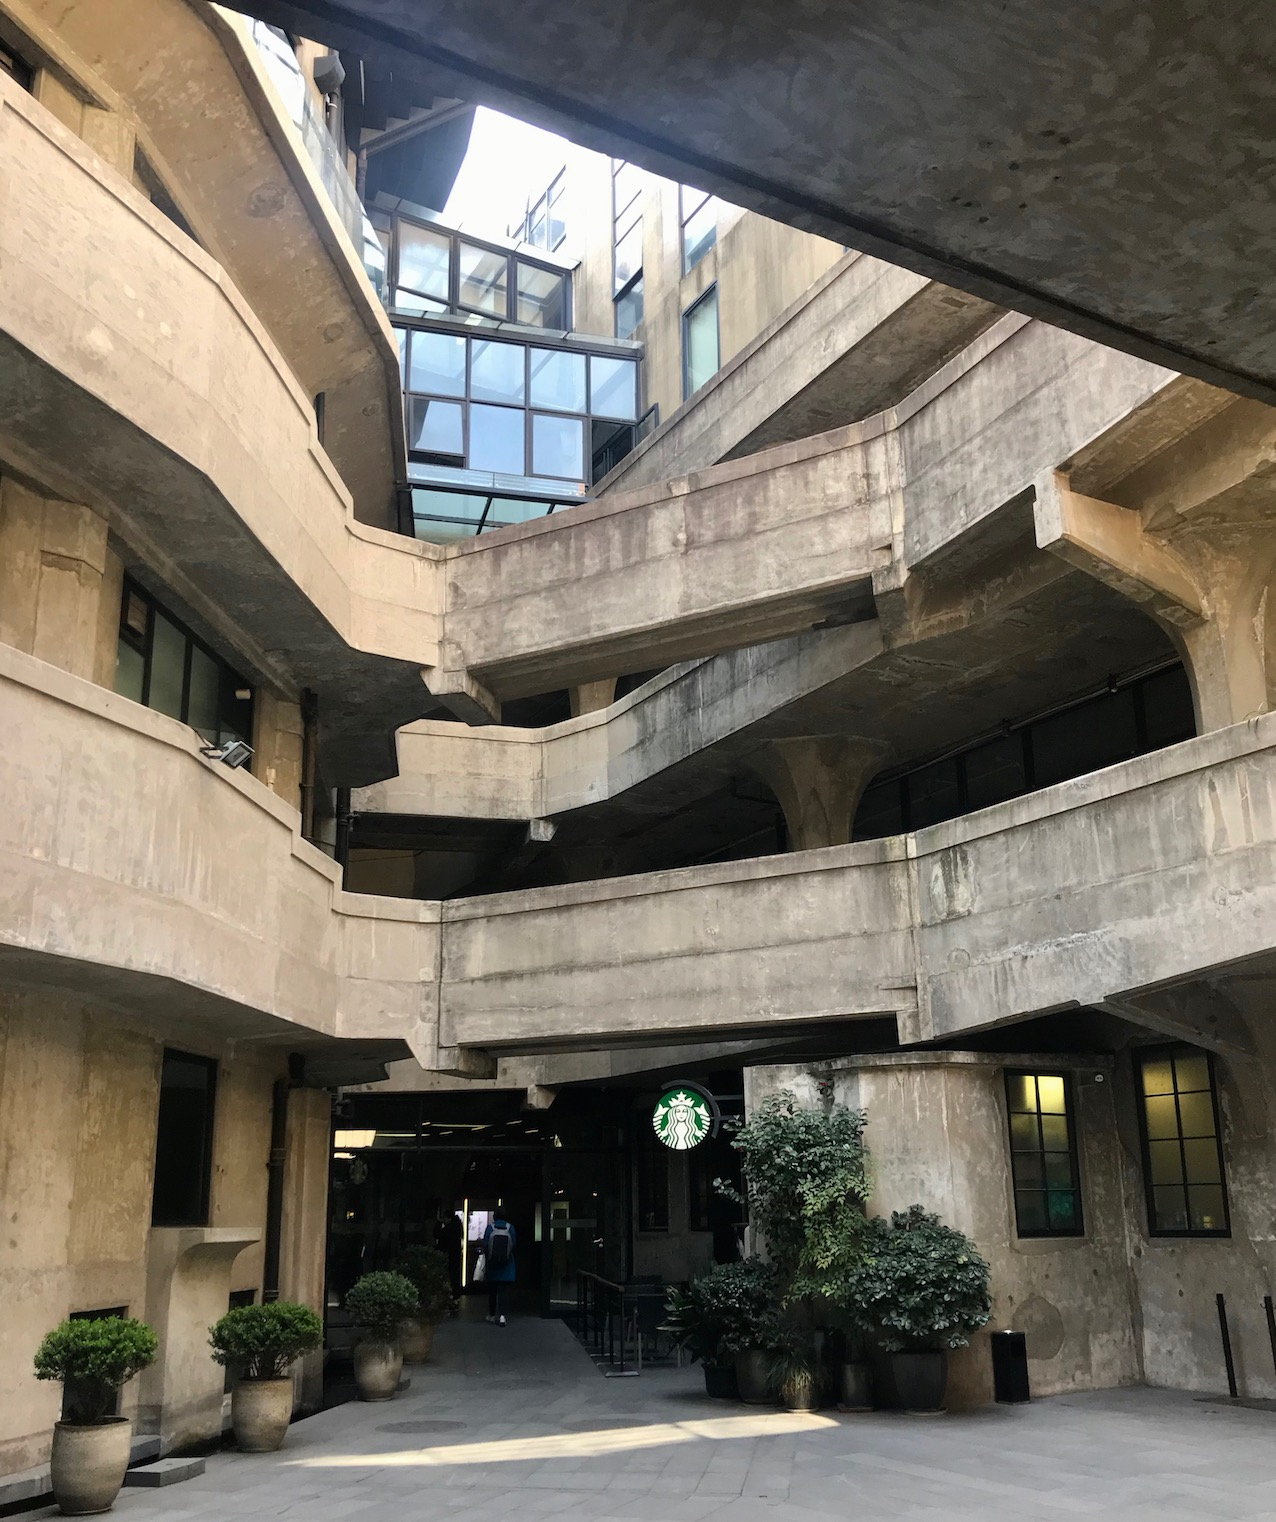 Starbucks 1933 Slaughterhouse Shanghai.